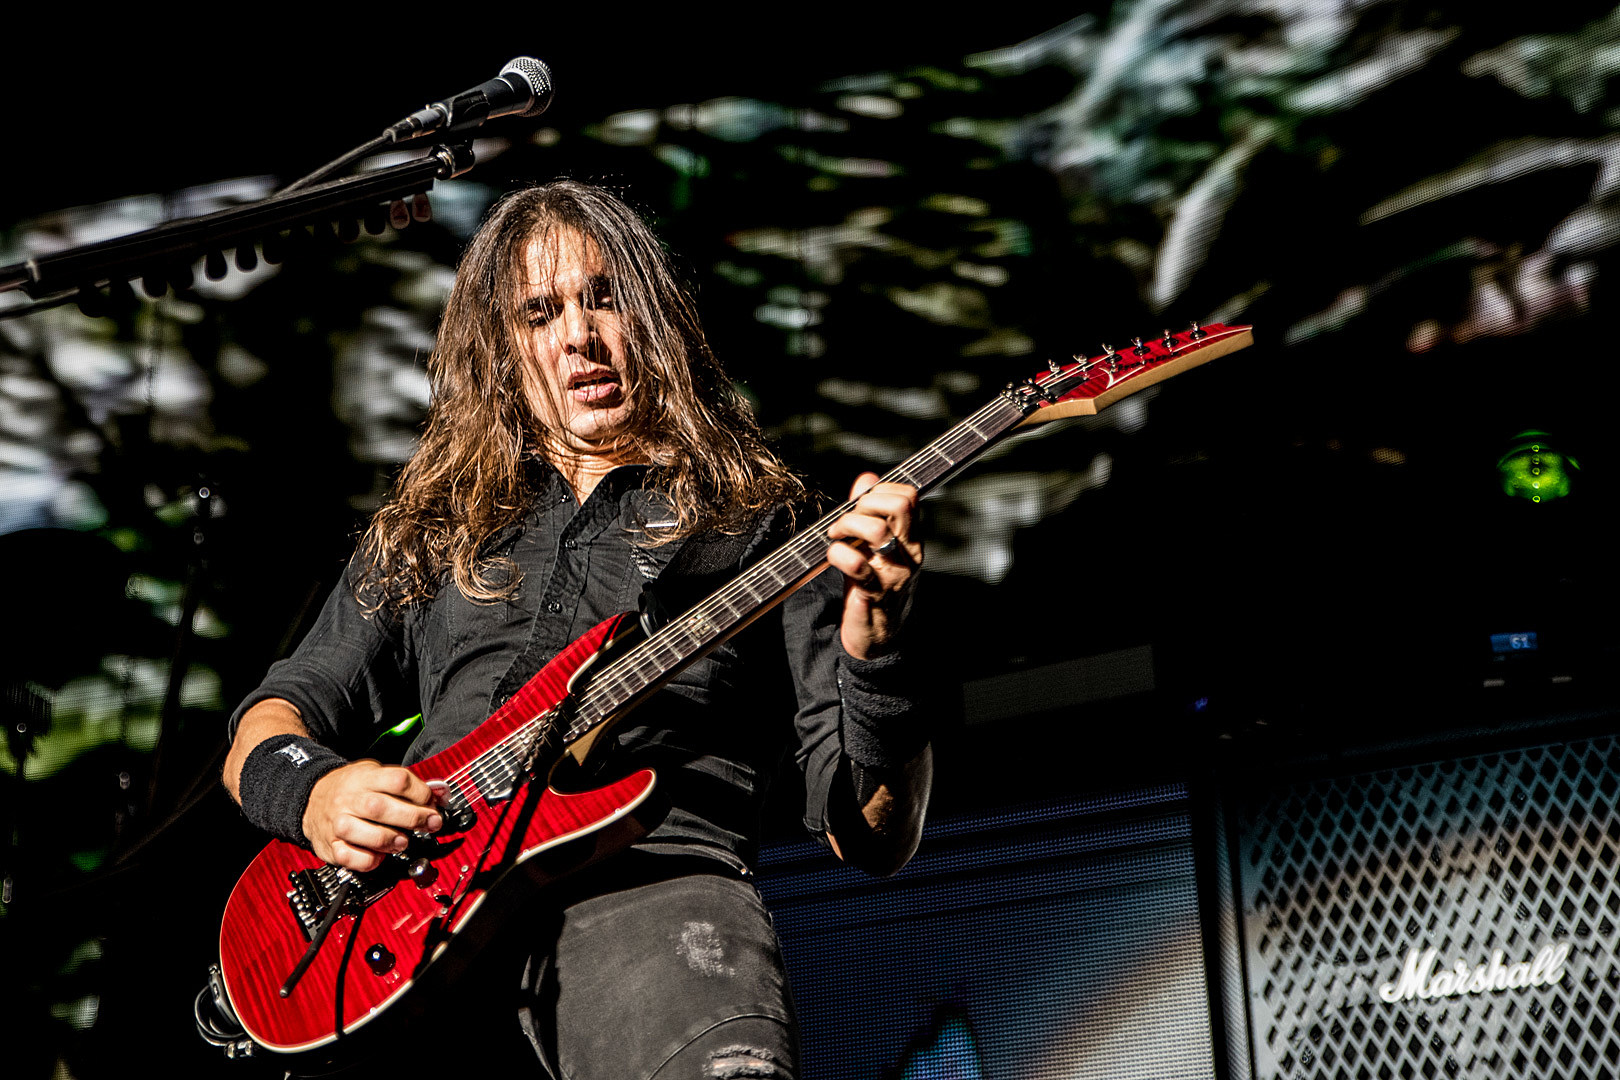 Watch Megadeth Guitarist Kiko Loureiro's Original Audition Video for the Band